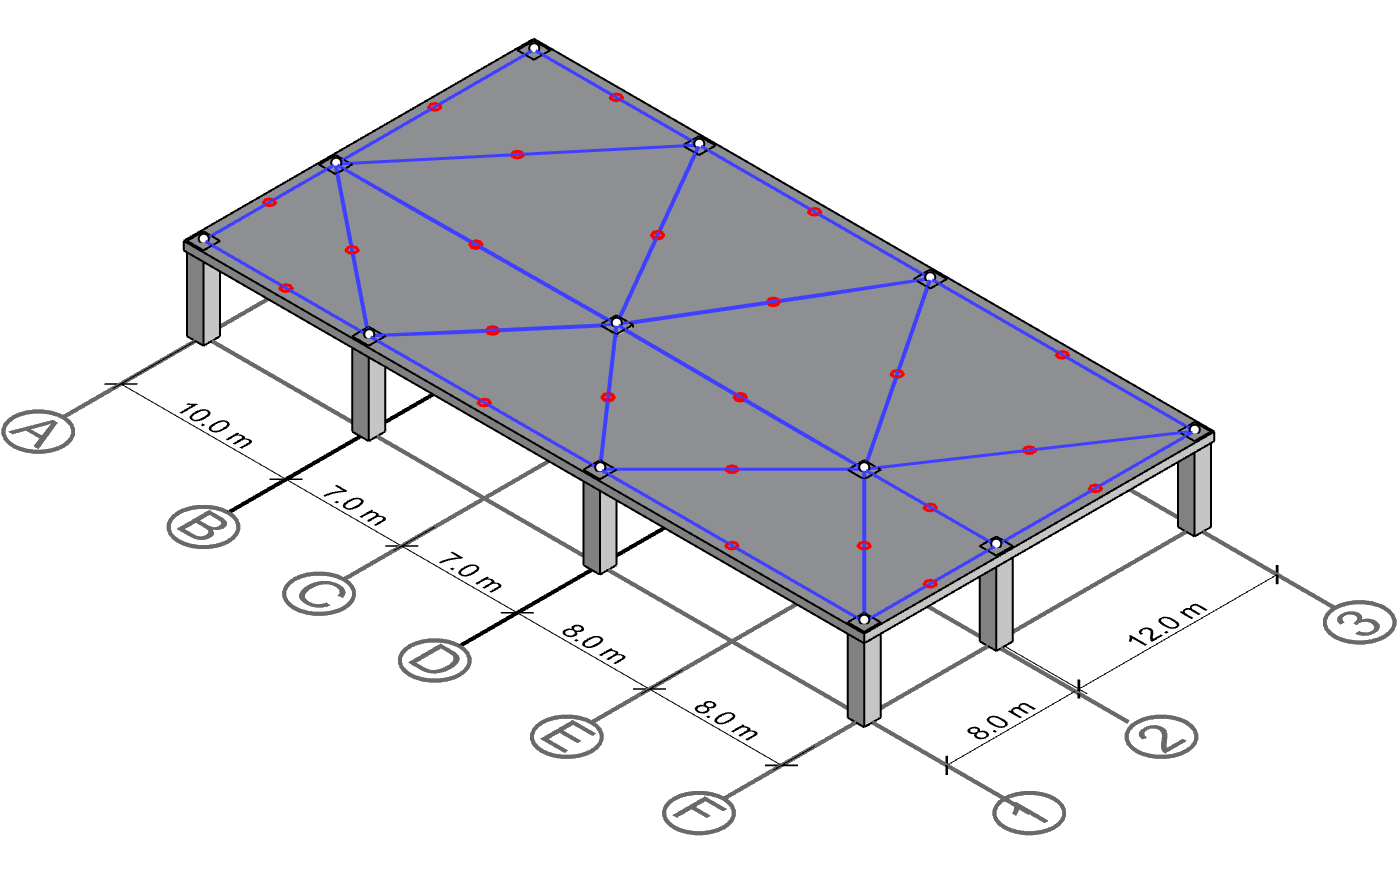 The mid point is identified on each connectivity line.